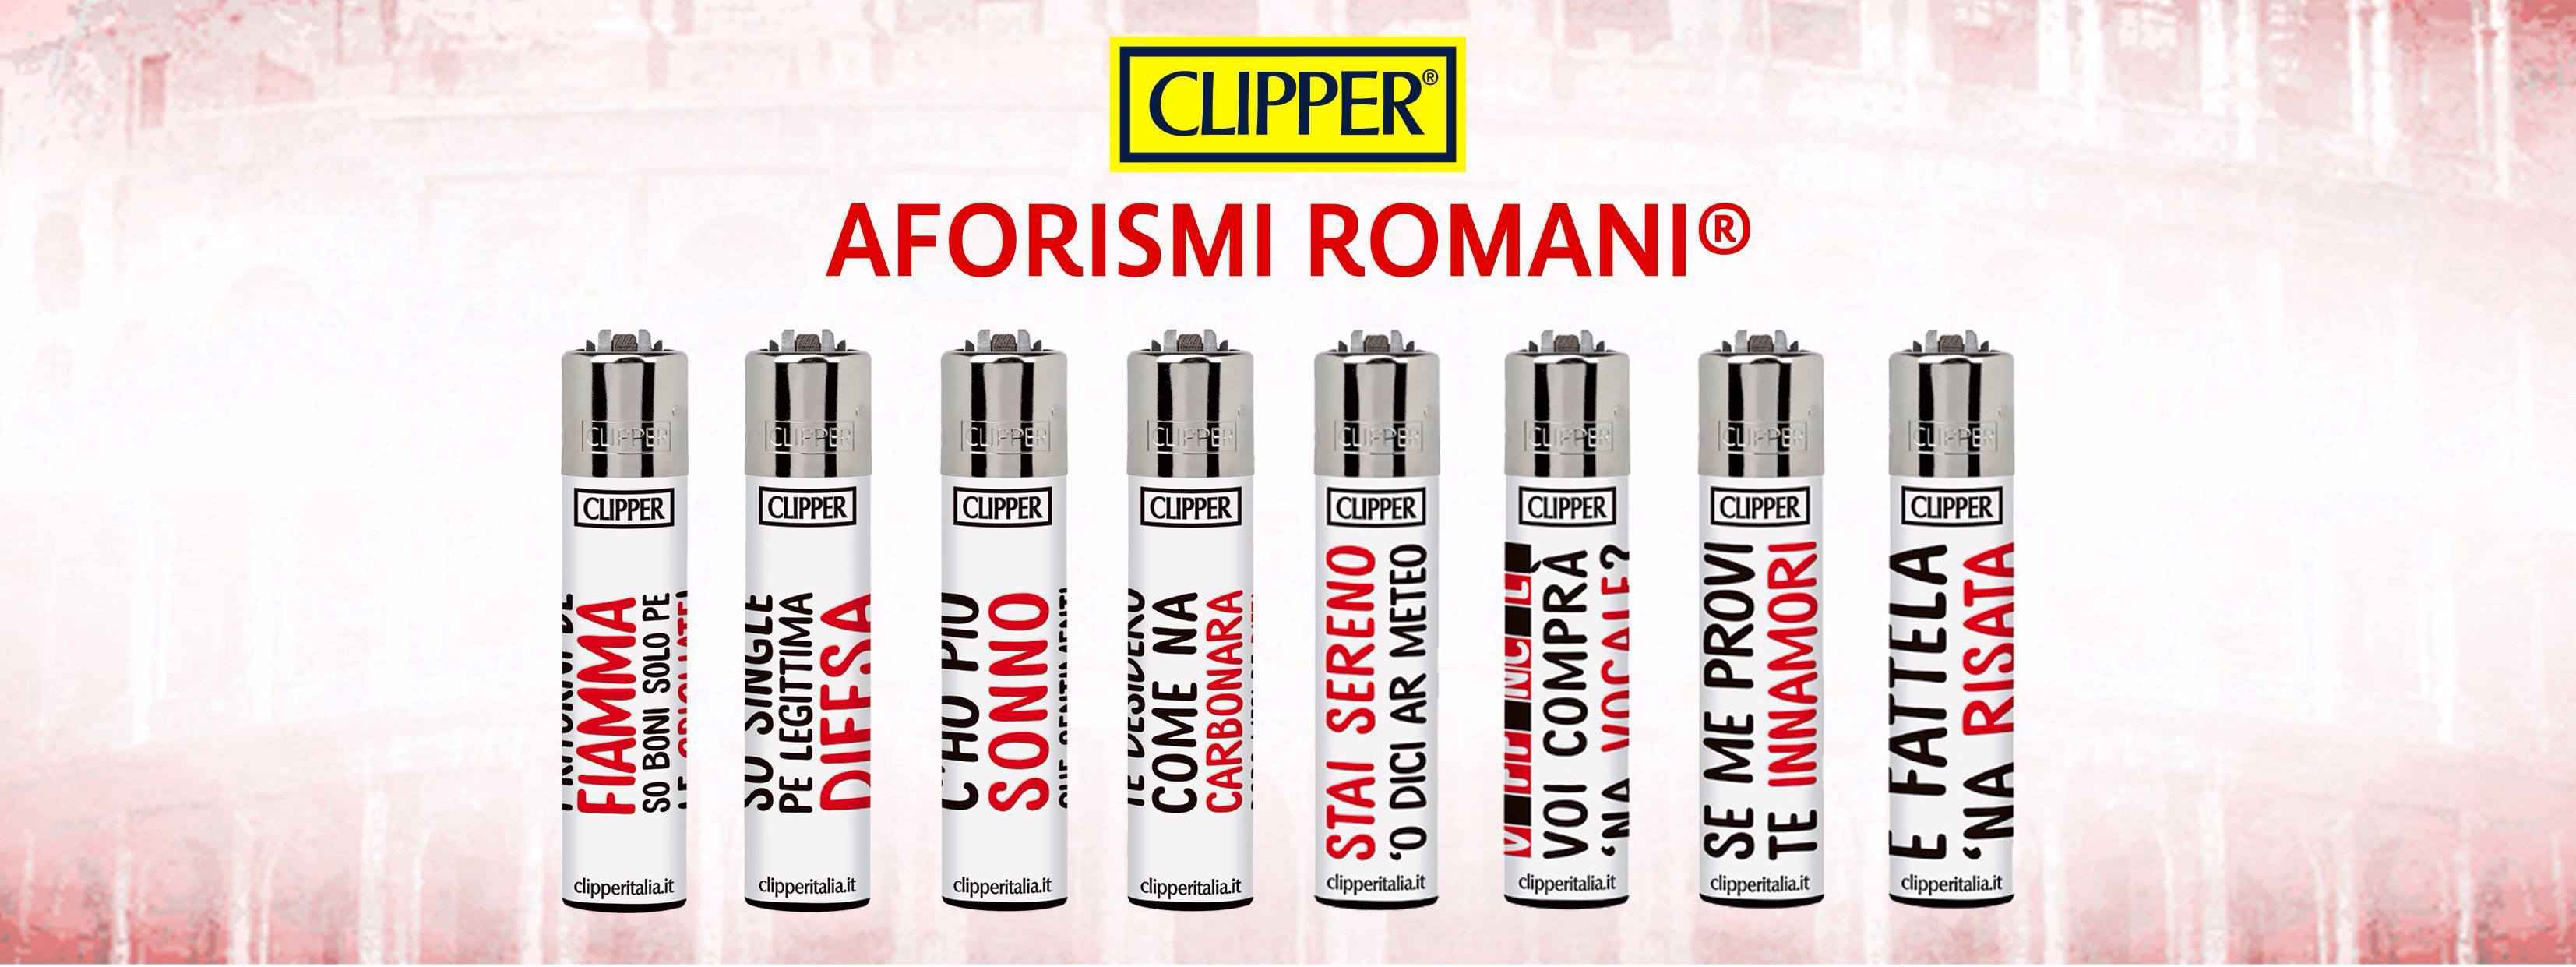 Aforismi Romani e Clipper in Limited Edition